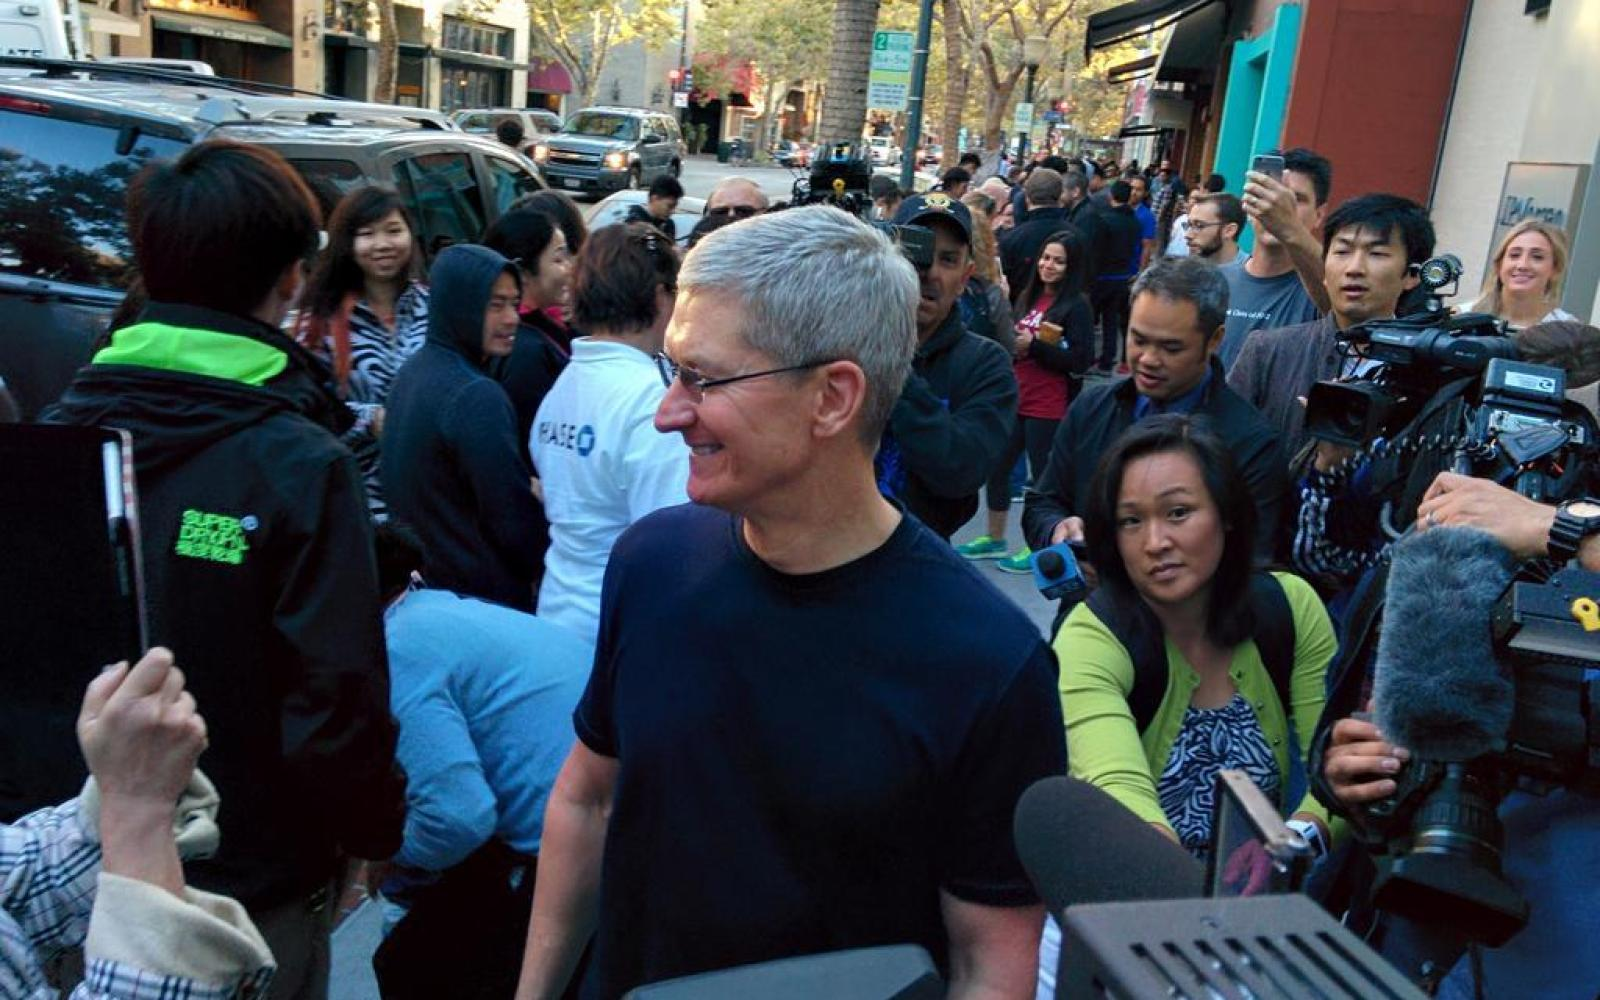 Tim Cook visits Palo Alto Apple Store for iPhone 6 launch as Angela Ahrendts welcomes Sydney